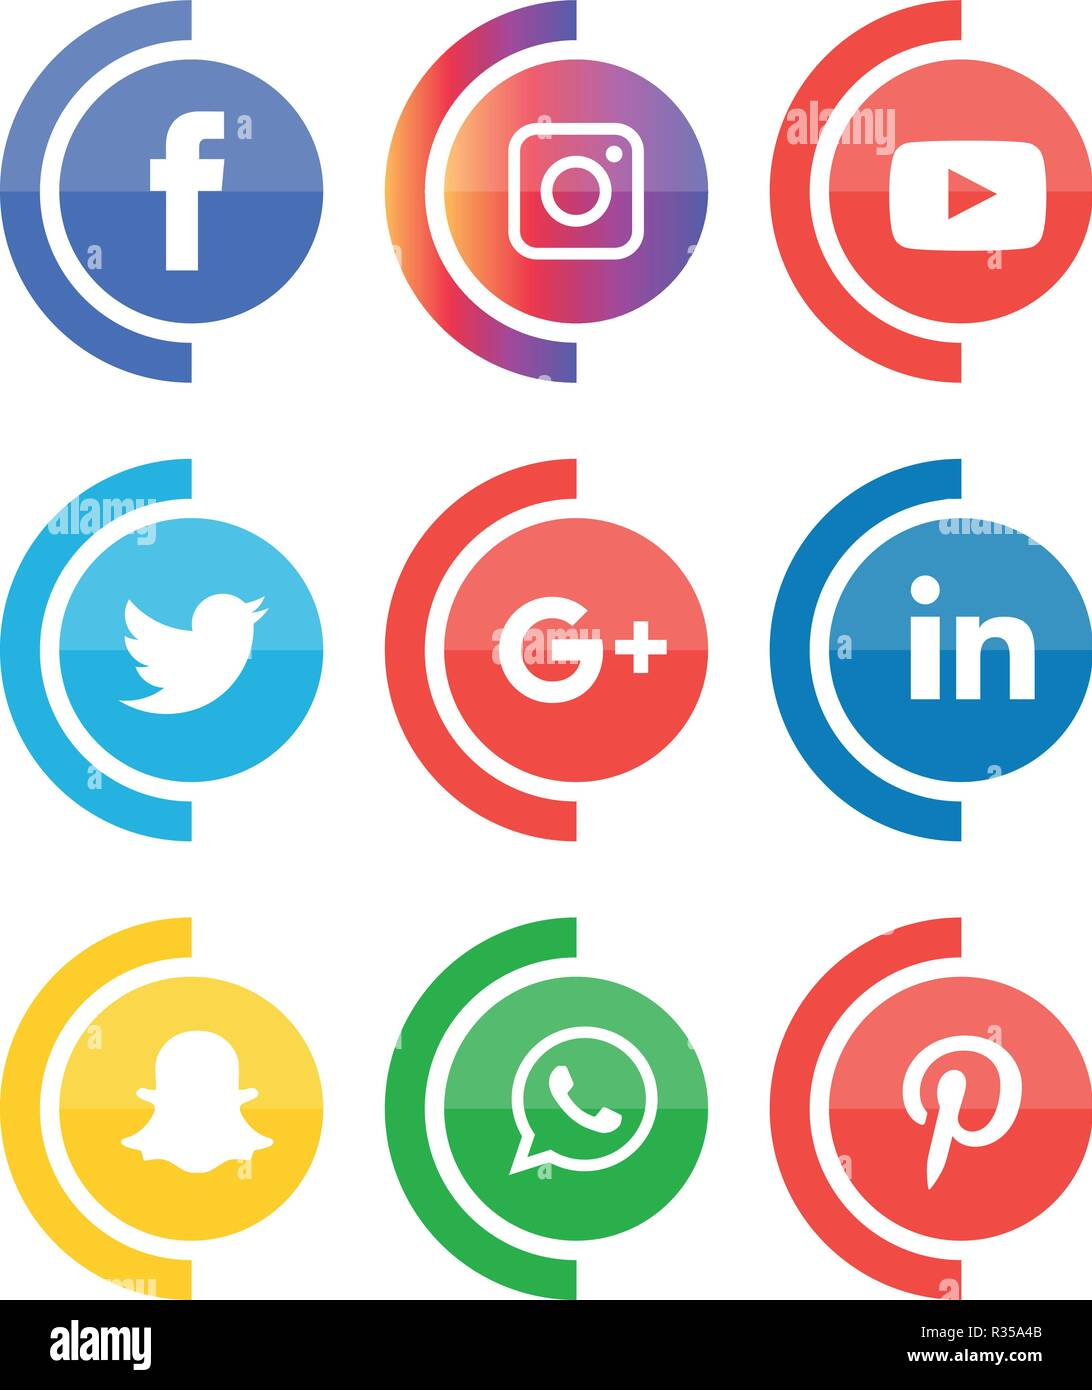 Facebook Instagram Twitter Logo : facebook, instagram, twitter, Social, Media, Icons, Vector, Illustrator,, Facebook,, Instagram,, Twitter,, Whatsapp,, Communication,, Google, Plus,, Device,, Youtube,, Smart,, Phone,, Stock, Image, Alamy